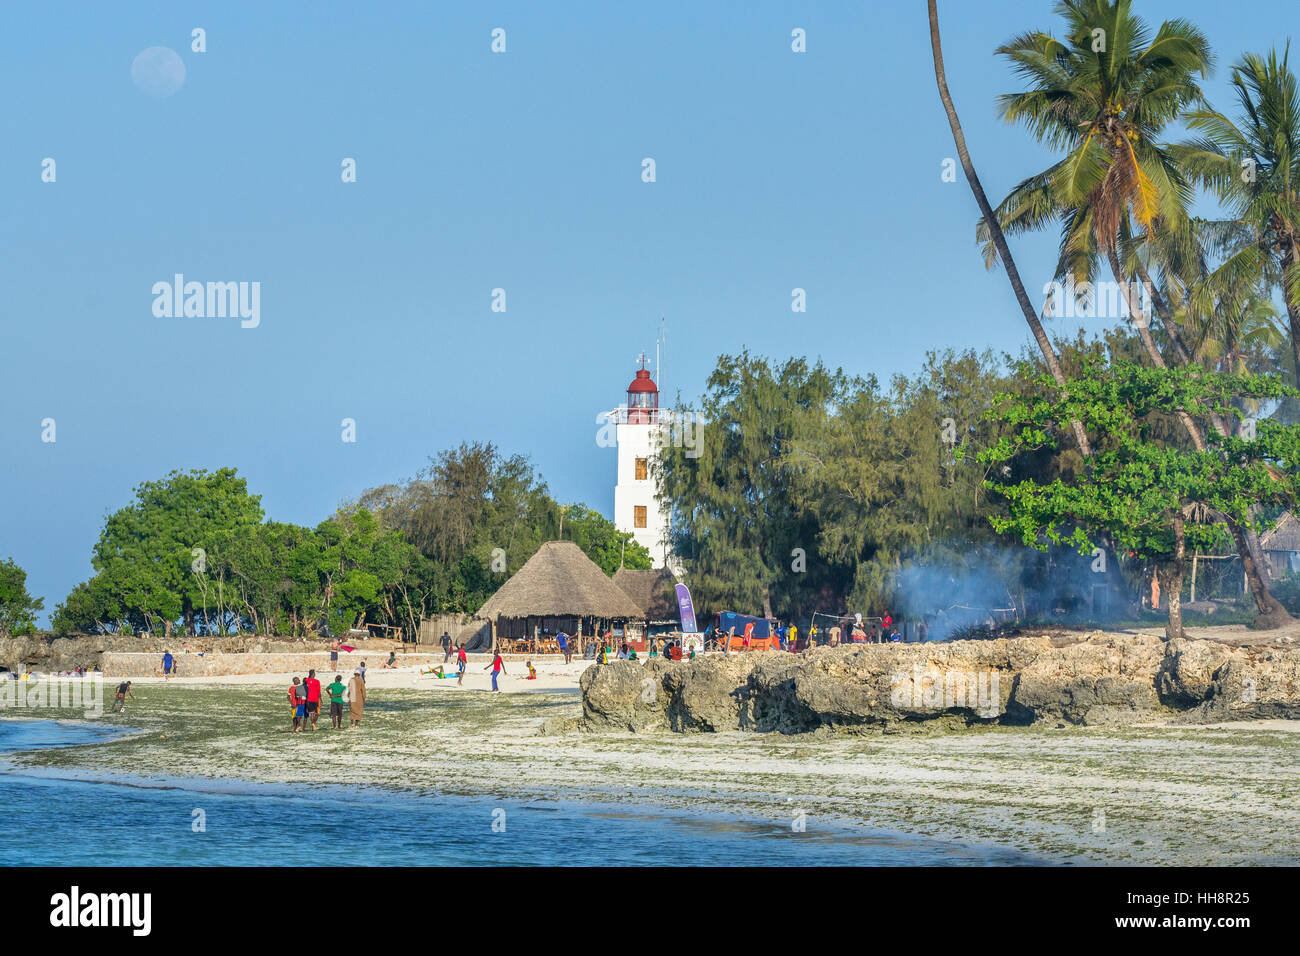 local people next to Nungwi lighthouse - Stock Image